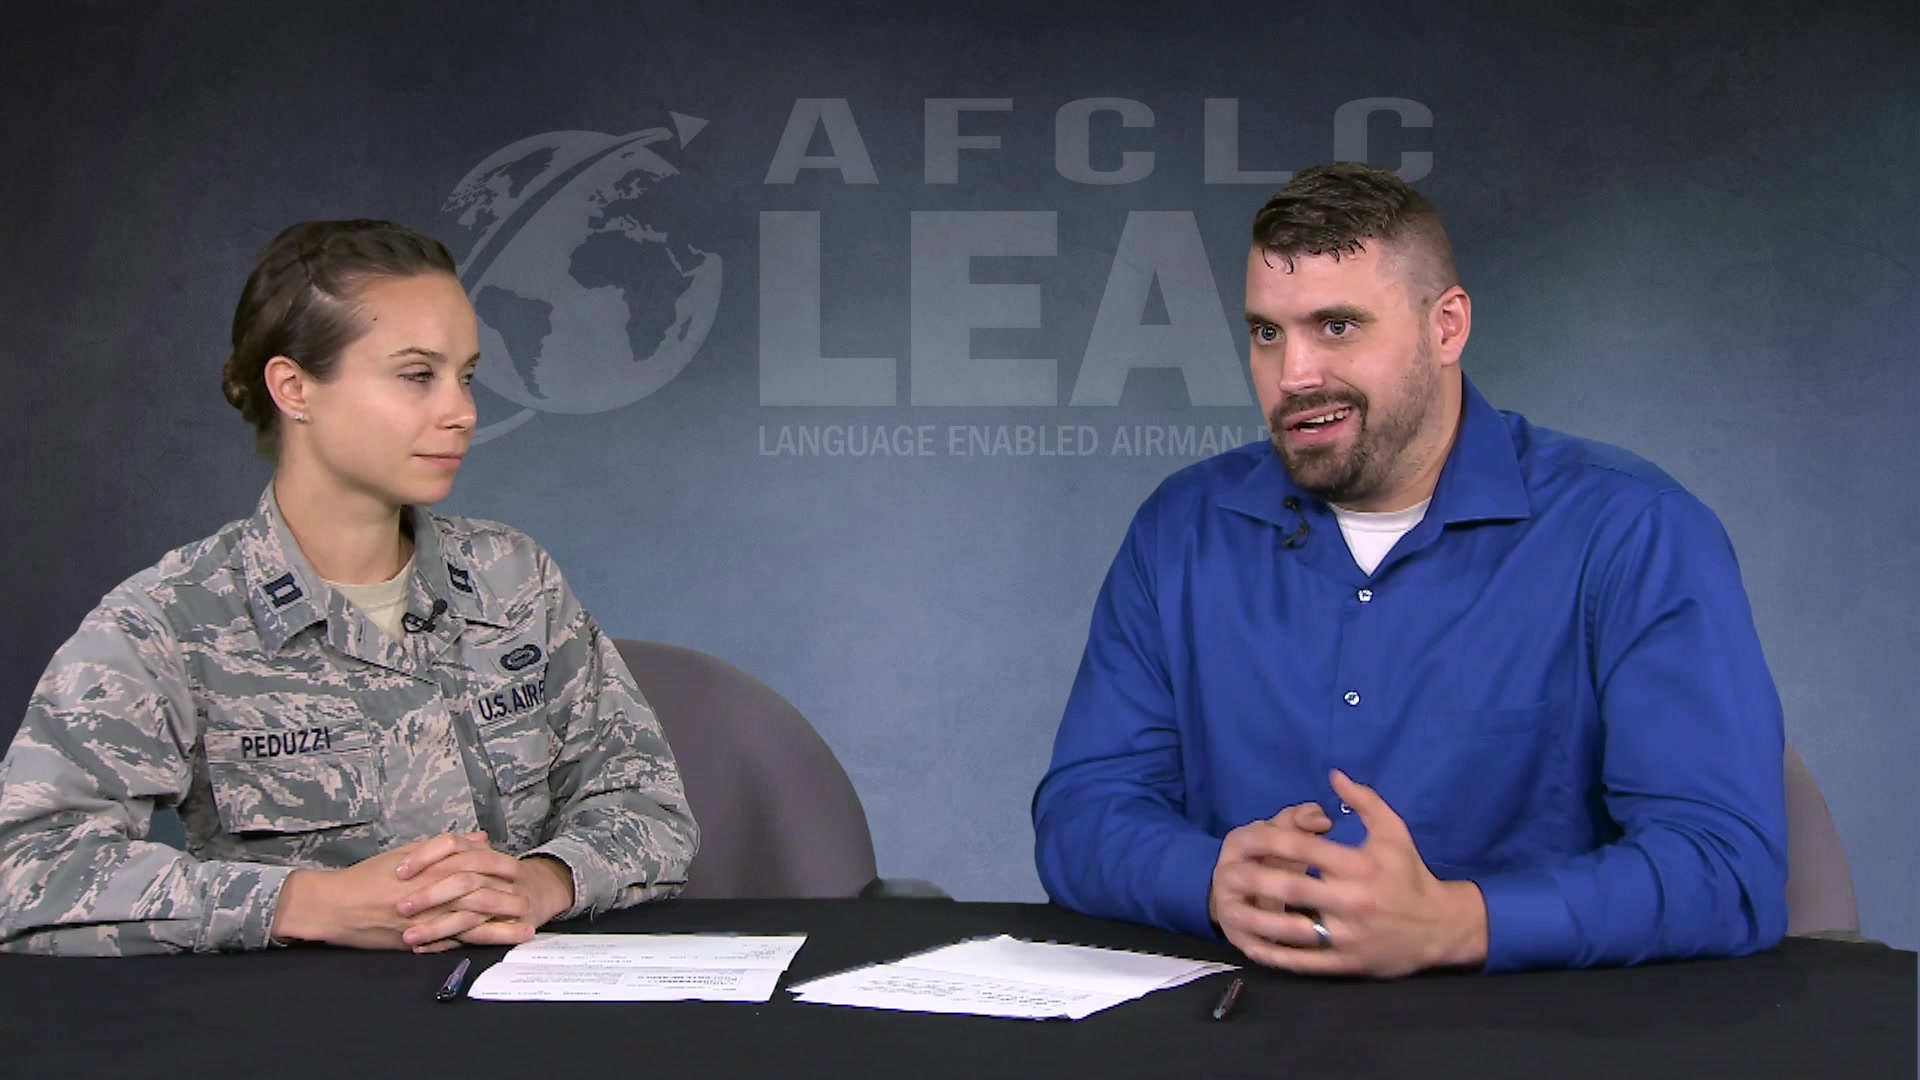 Language Enabled Airman Program (LEAP) interview with Capt Evgenia Peduzzi's, discussing her experiences as a member of the LEAP program and the skillsets and opportunities LEAP members provide in assisting the DoD mission.